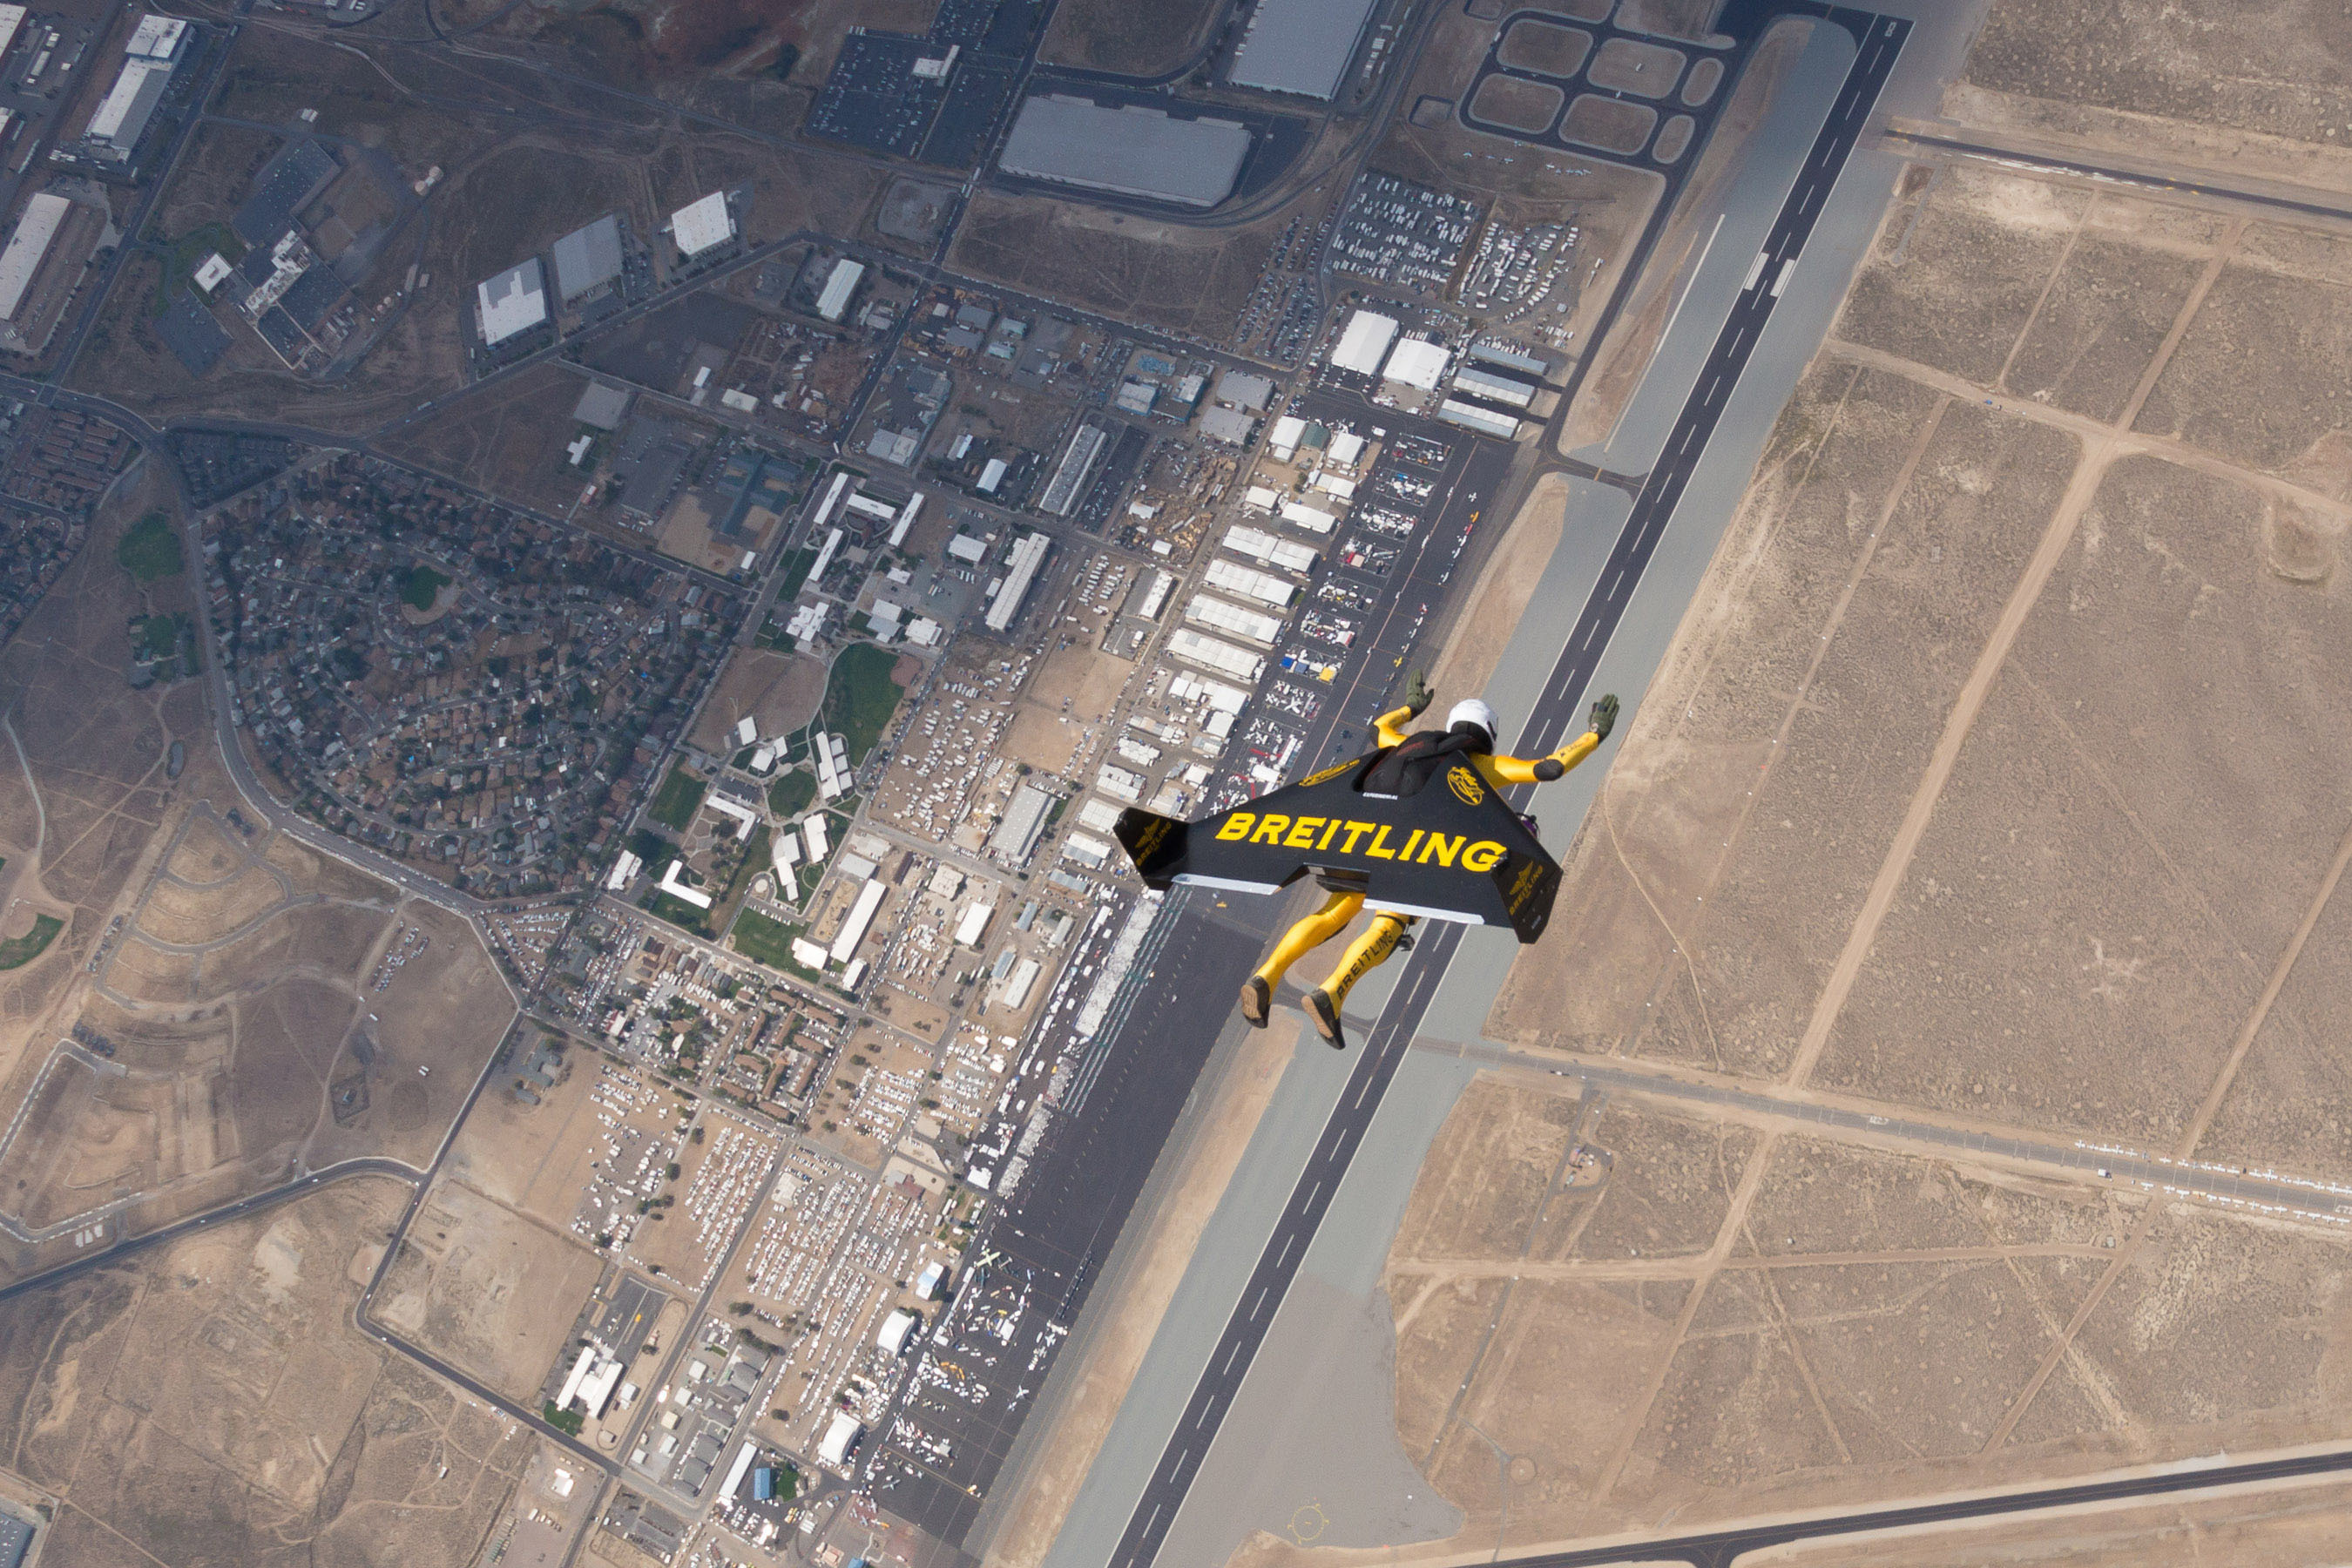 """Yves """"Jetman"""" Rossy performs during the National Championship Air Races in Reno, NV. Photo by Bernet, courtesy of Breitling SA. (PRNewsFoto/Breitling, Bernet) (PRNewsFoto/BREITLING)"""